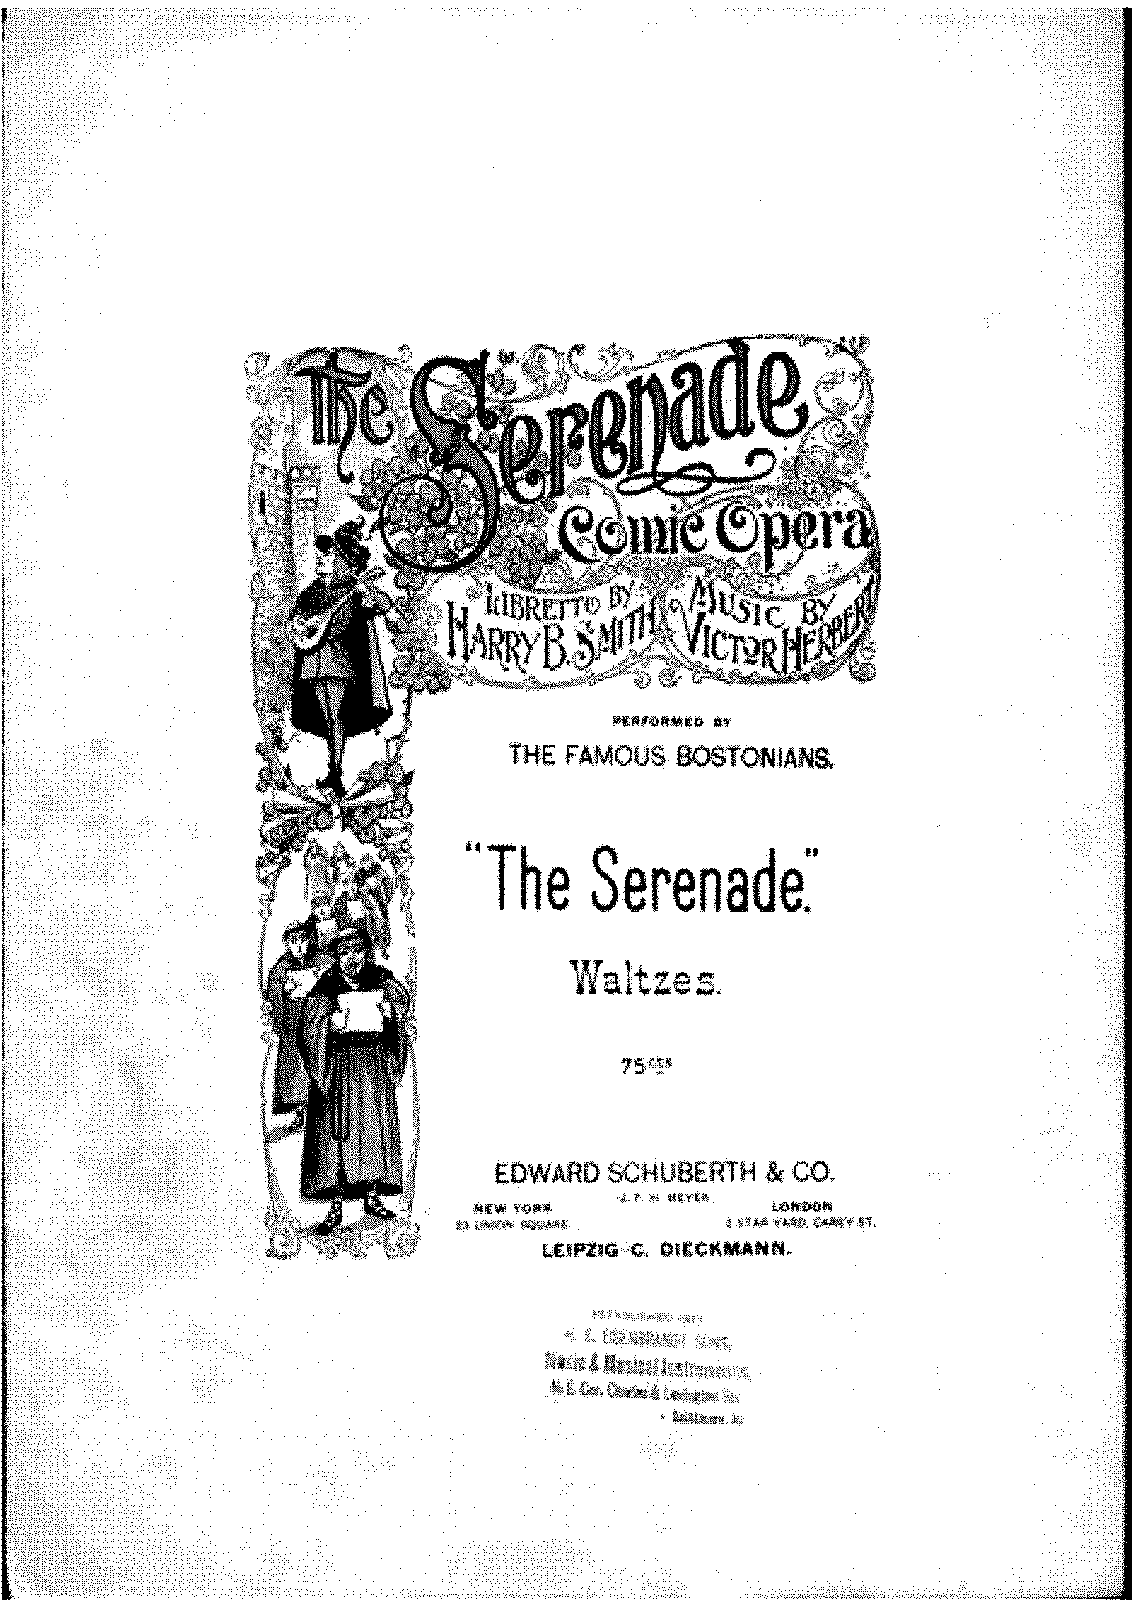 Herbert - The Serenade (Waltzes).pdf